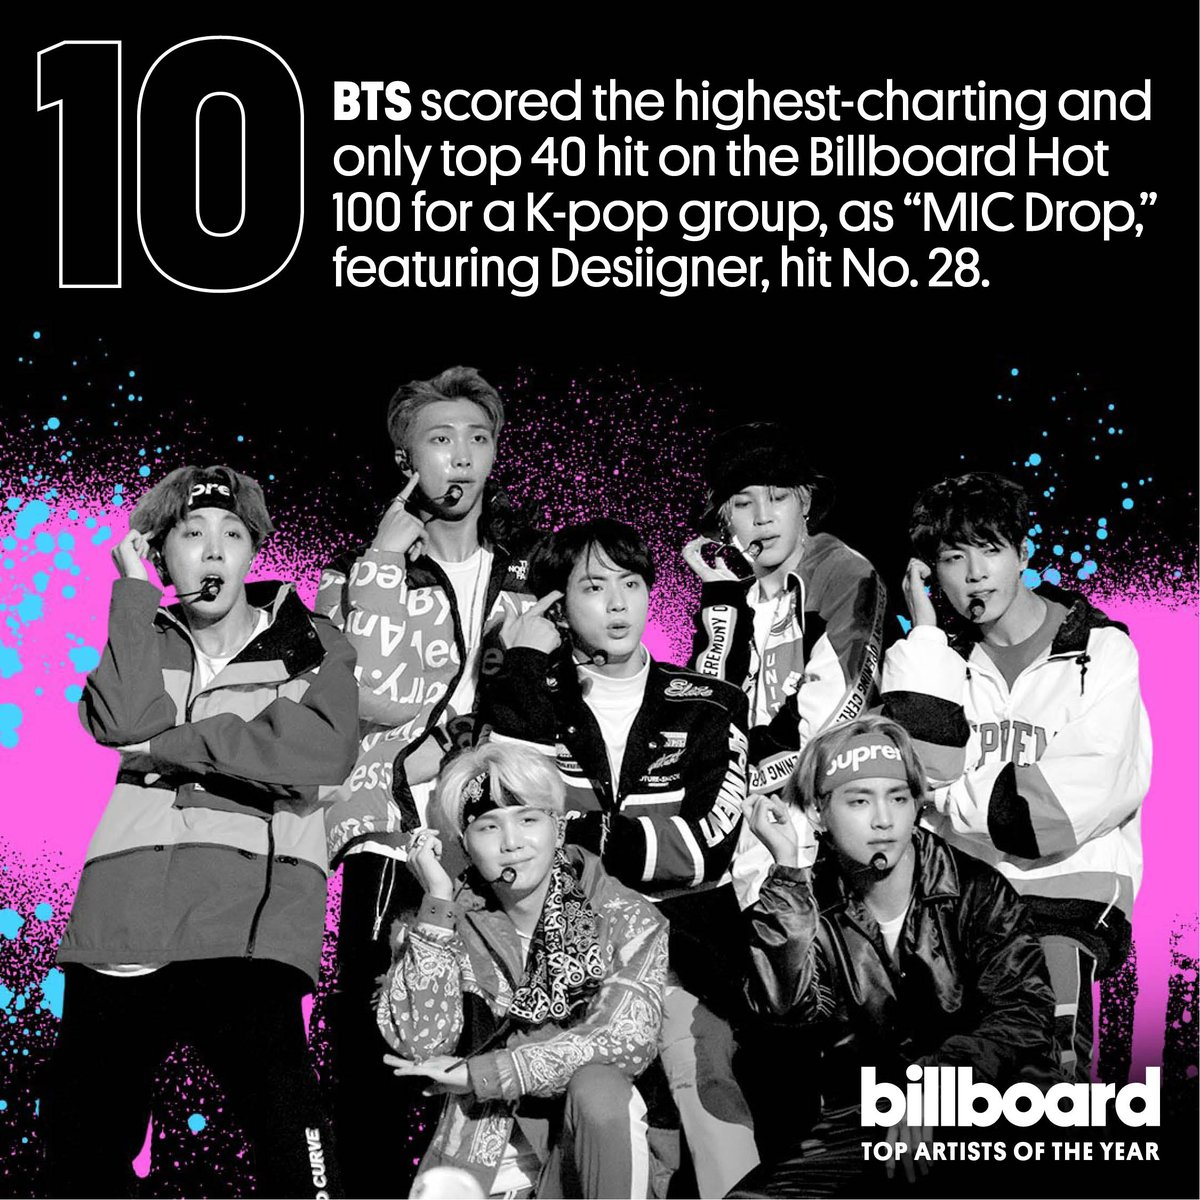 .@BTS_twt are No. 10 on our top artist of the year list! #YearInMusic https://t.co/I41ahZi0UE